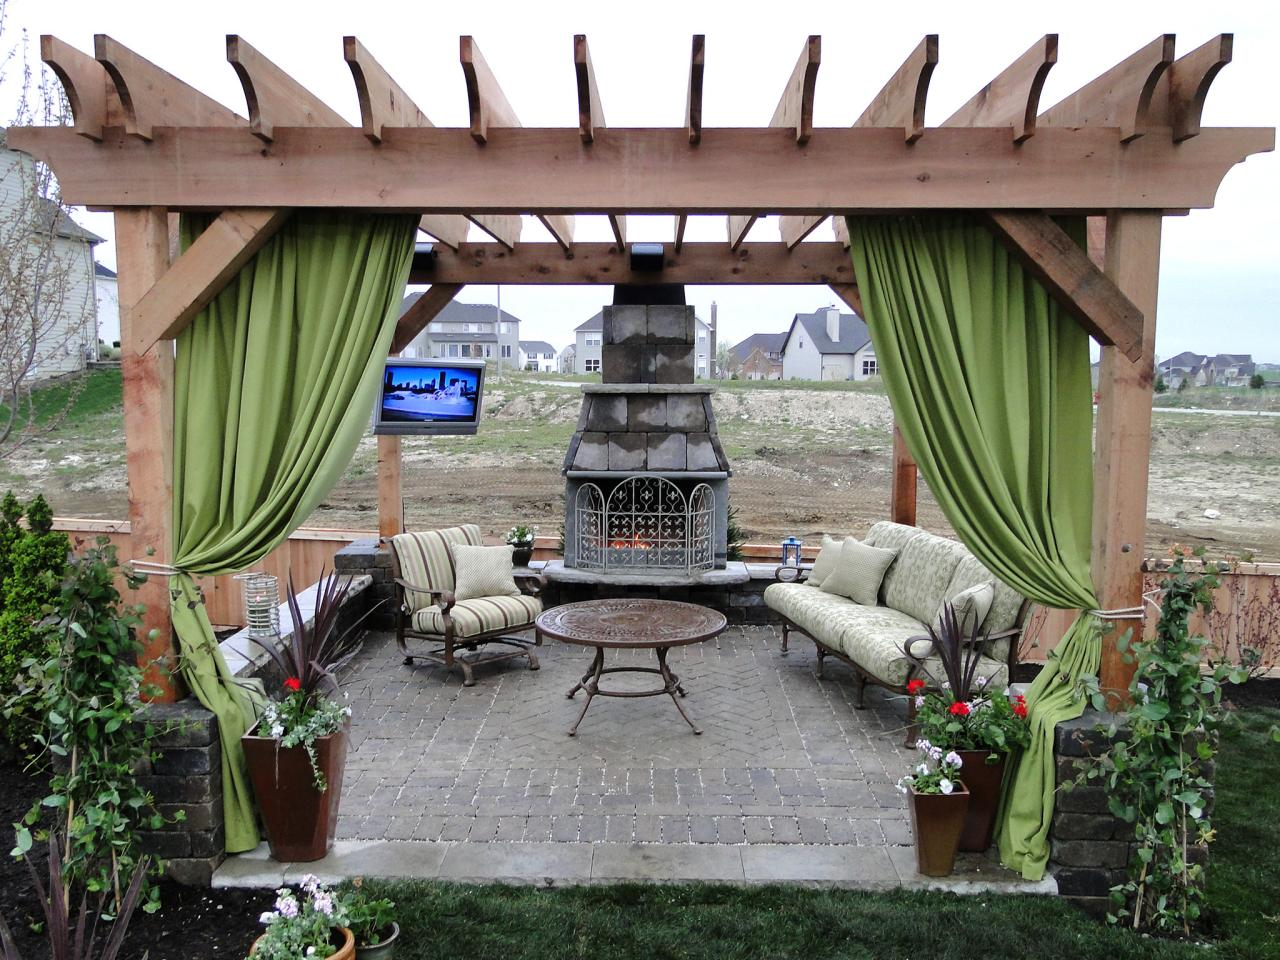 Redwood-New Braunfels TX Landscape Designs & Outdoor Living Areas-We offer Landscape Design, Outdoor Patios & Pergolas, Outdoor Living Spaces, Stonescapes, Residential & Commercial Landscaping, Irrigation Installation & Repairs, Drainage Systems, Landscape Lighting, Outdoor Living Spaces, Tree Service, Lawn Service, and more.